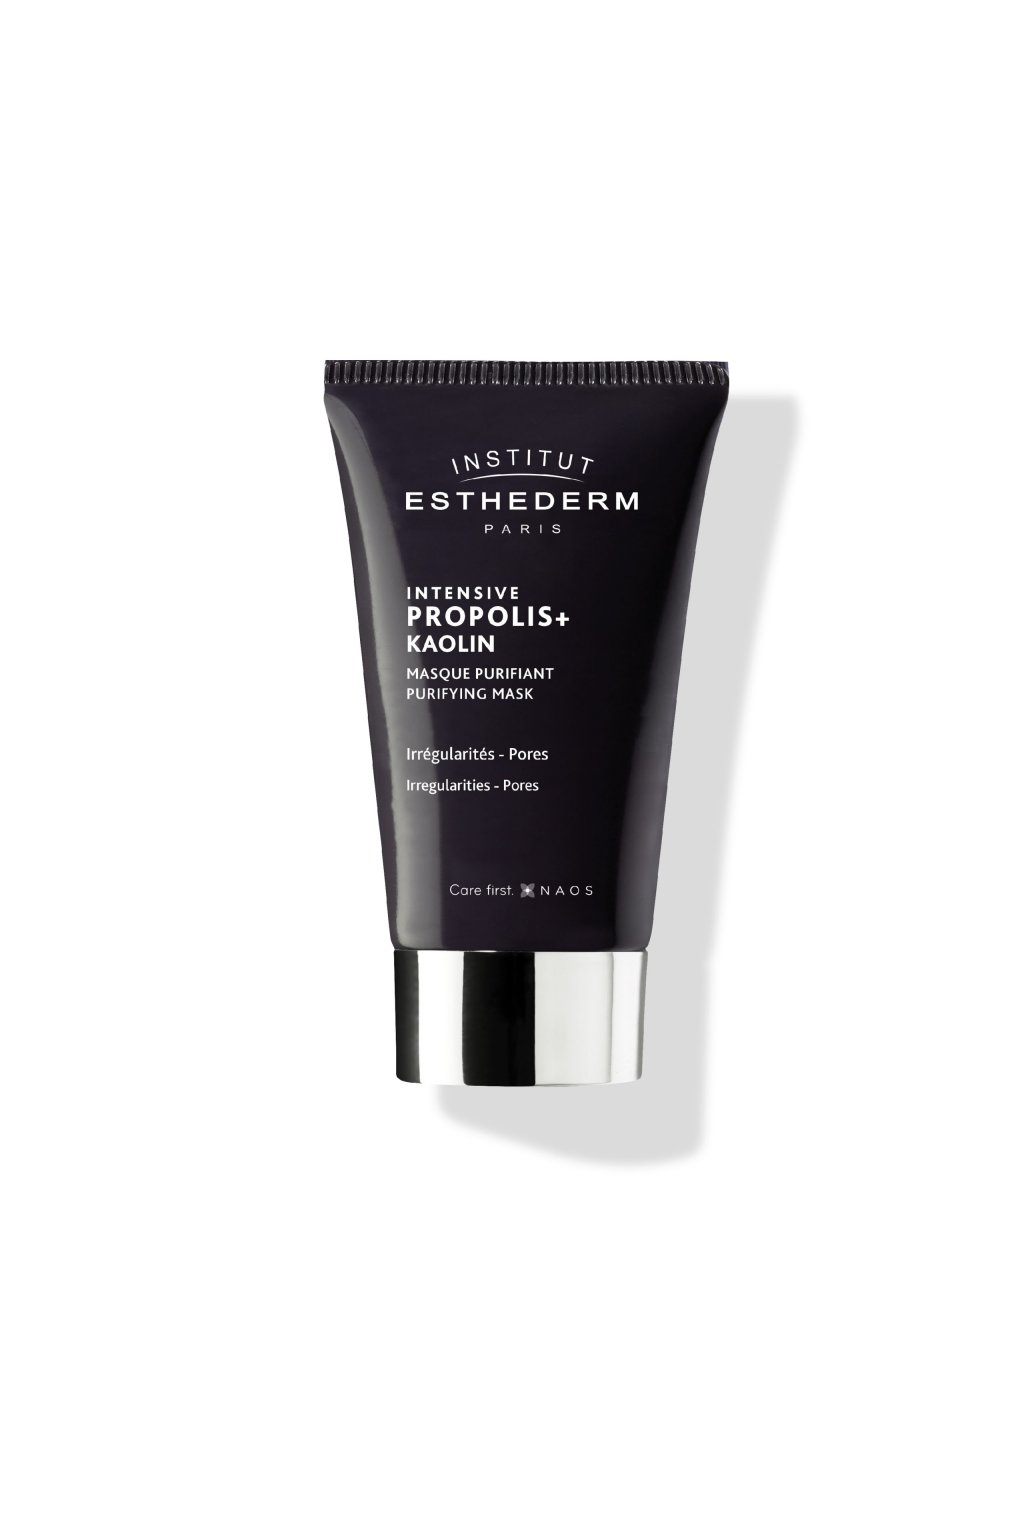 INTENSIVE PROPOLIS MASQUE PURIFIANT scaled